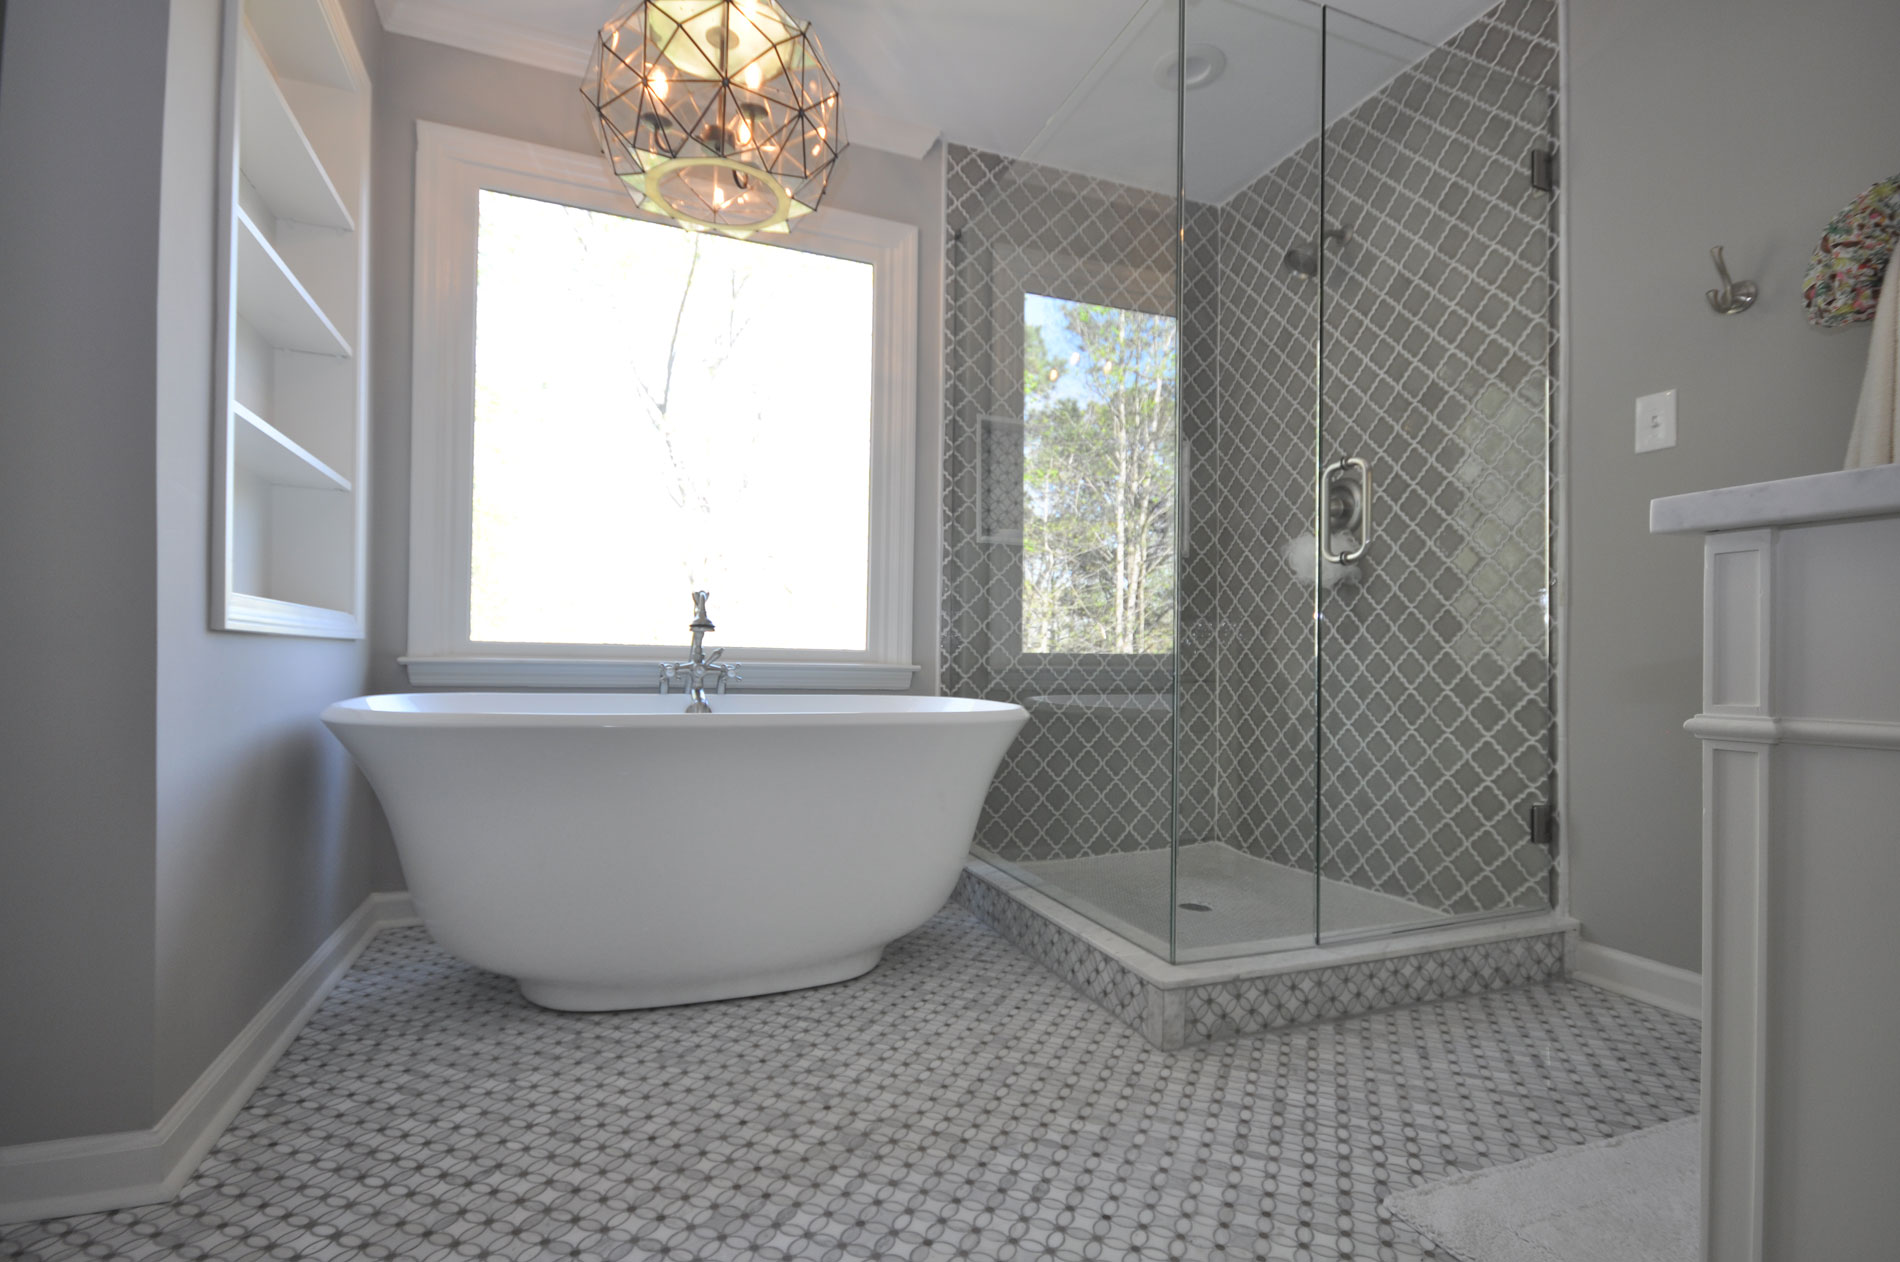 Bathroom With Freestanding Tub Gifklikker